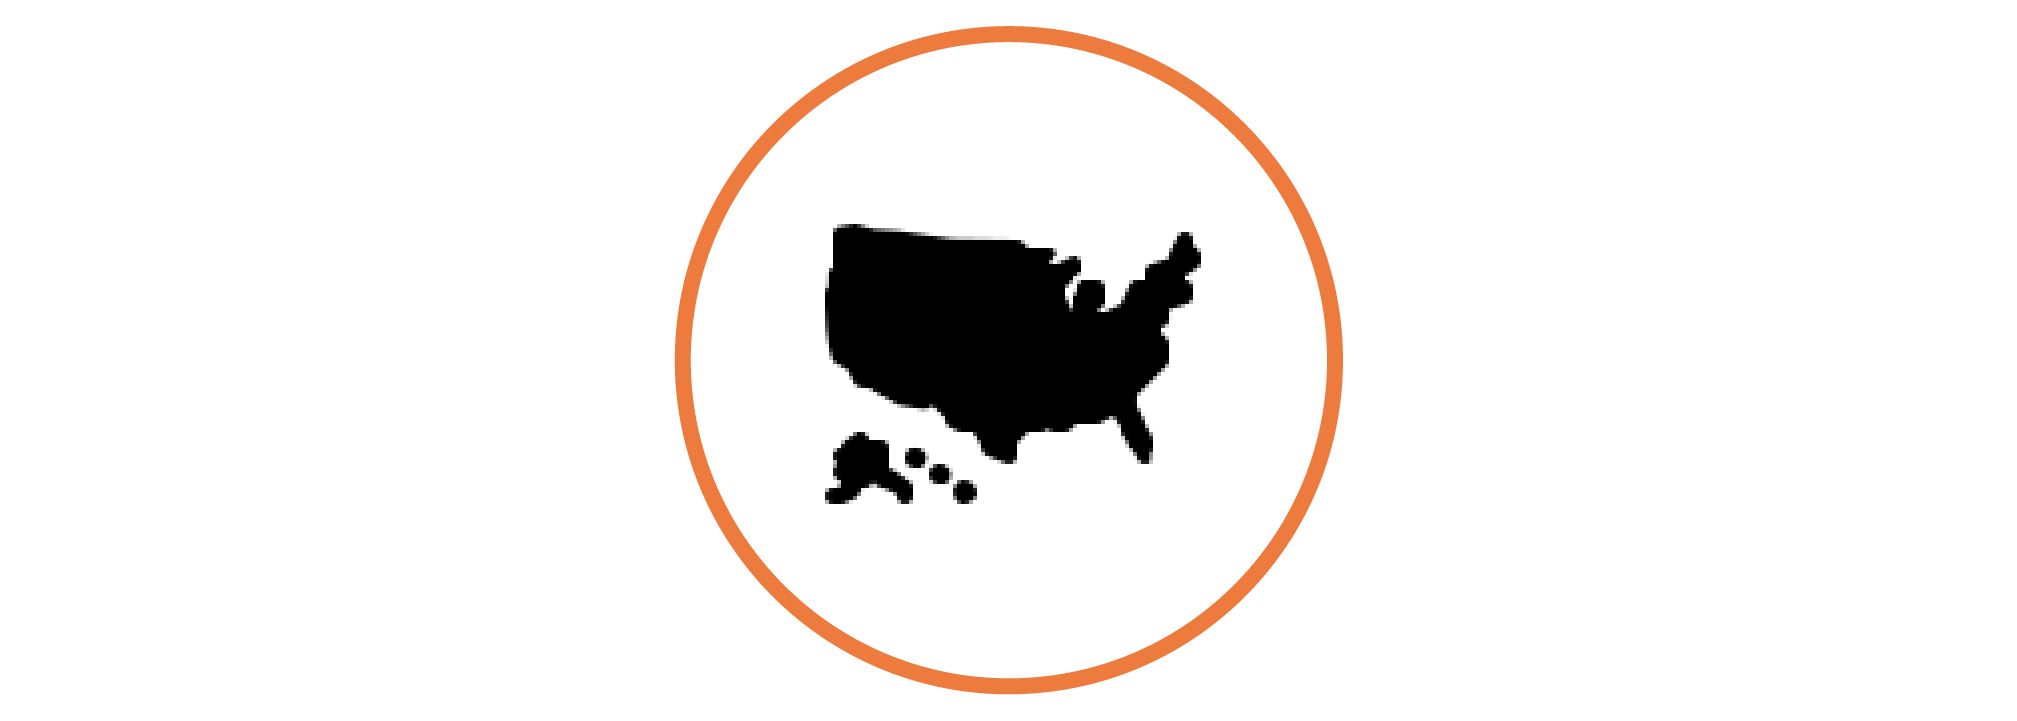 icon of the united states